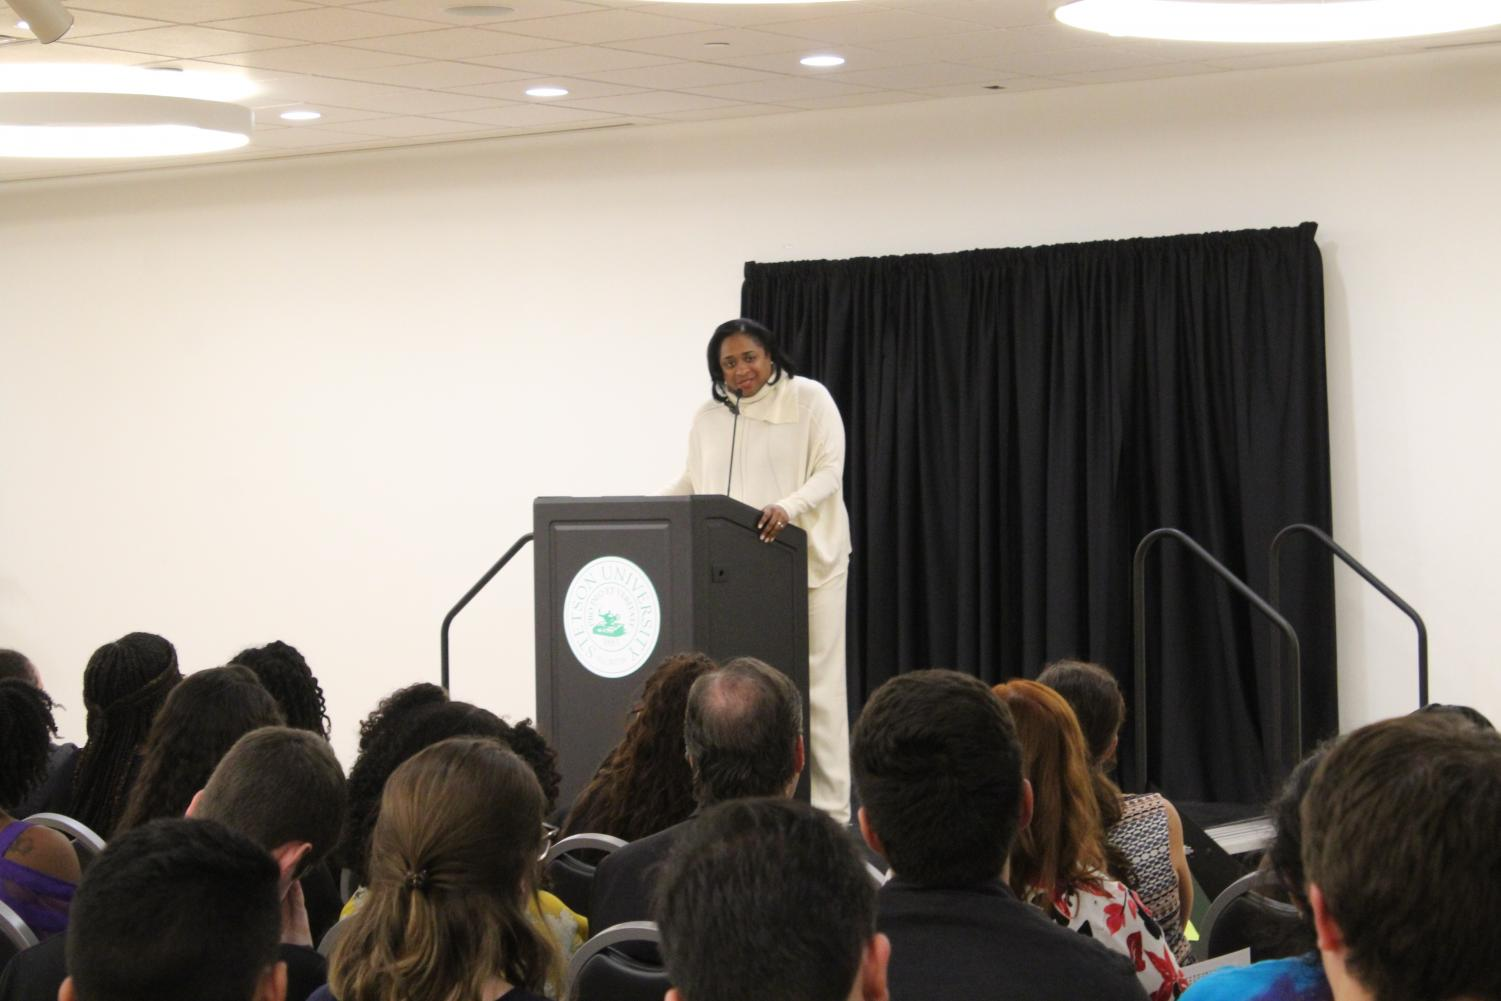 Bonisha Townsend-Porter speaking of Stetson's diversity at MLK: Life & Legacy - The Power of Now.